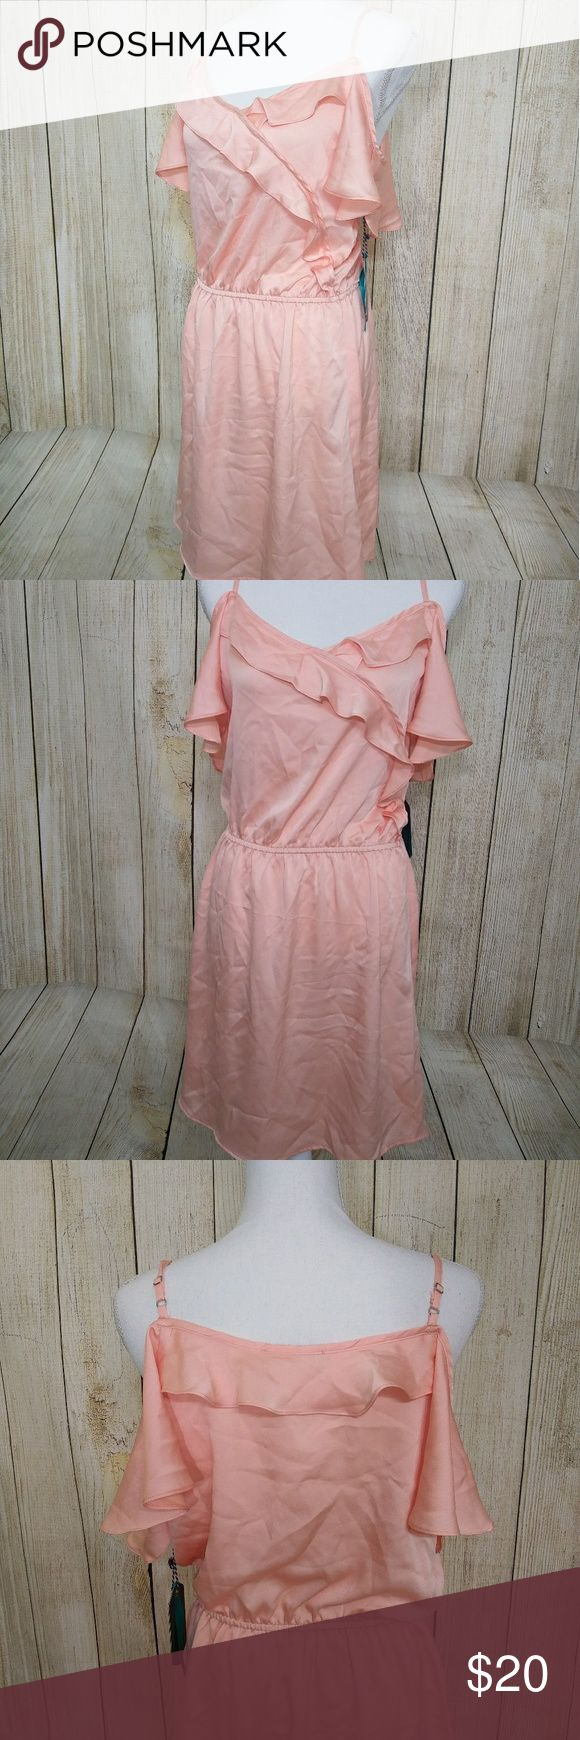 NWT Salmon Peach Colored Cold Shoulder Dress Beautiful cold shoulder light peach colored dress. New with tags. Most Collection Dresses Midi